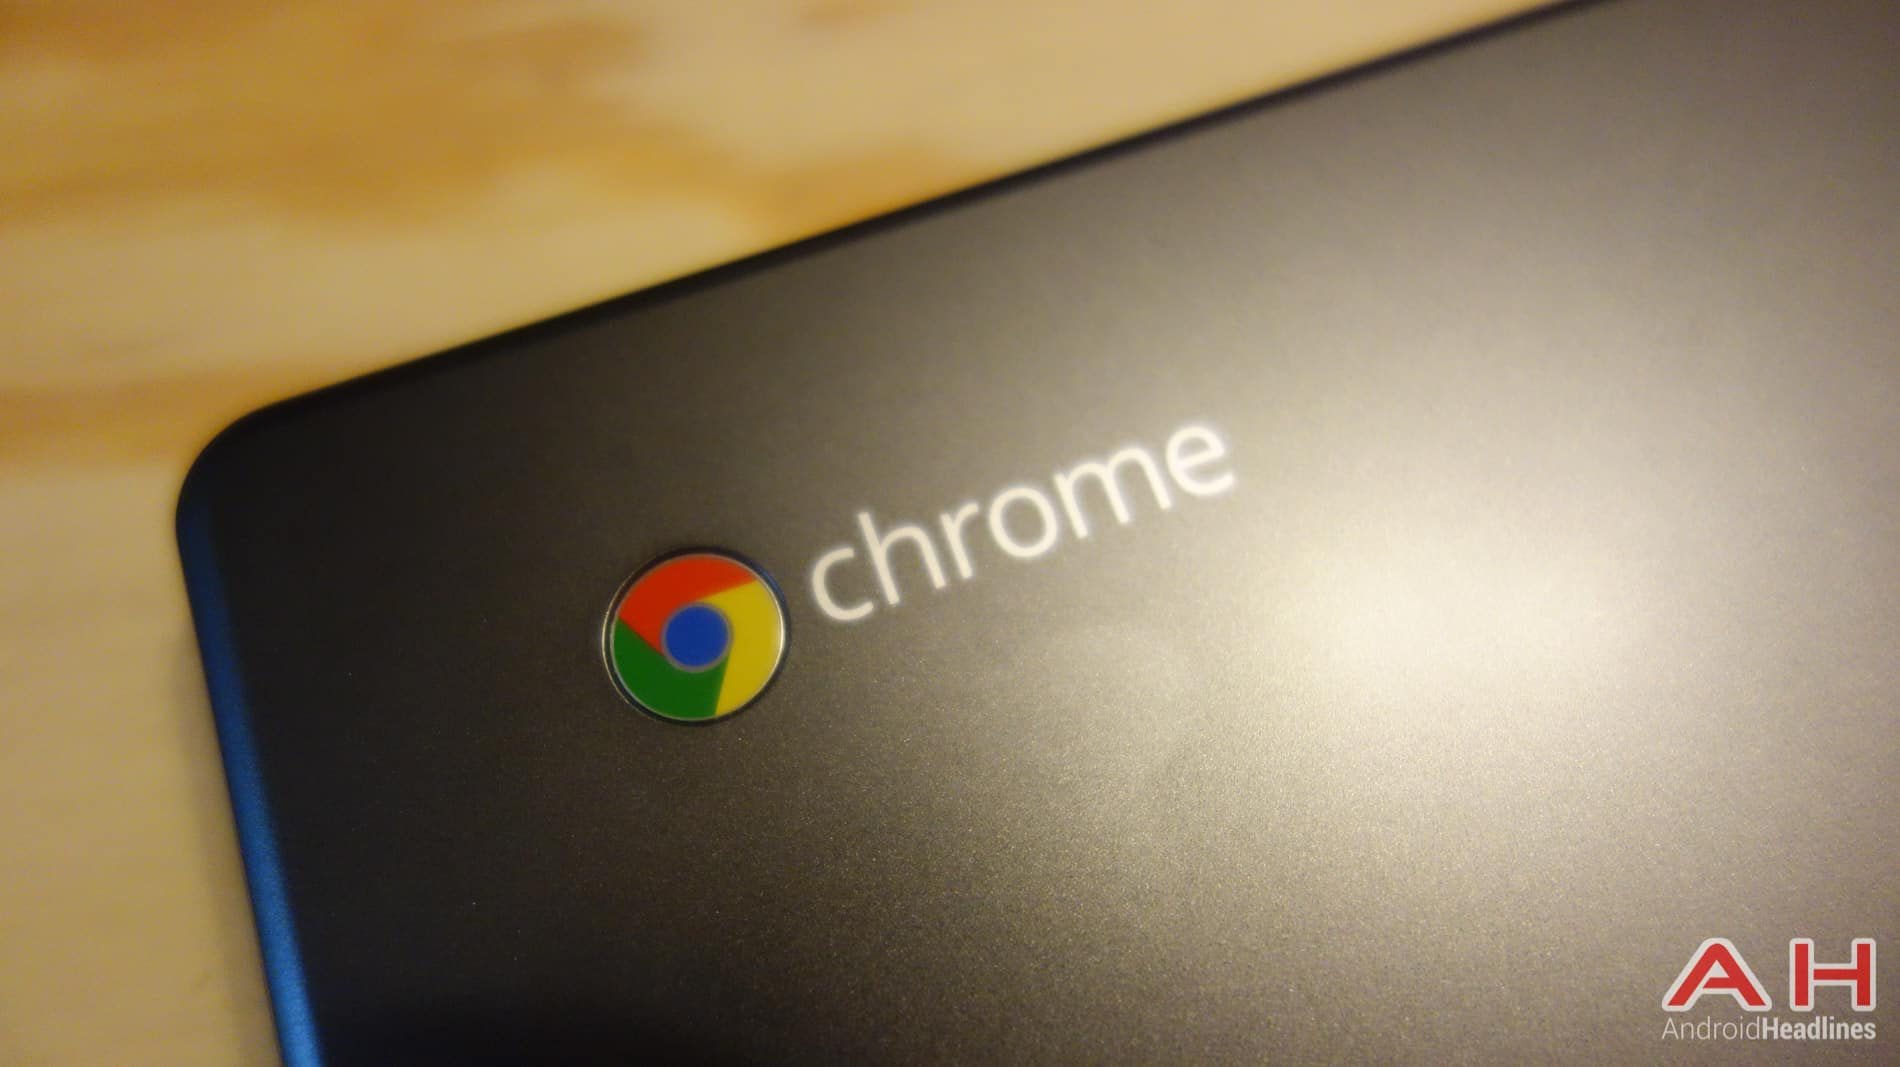 Upcoming Chromebooks Look to Feature Wireless Inductive Charging